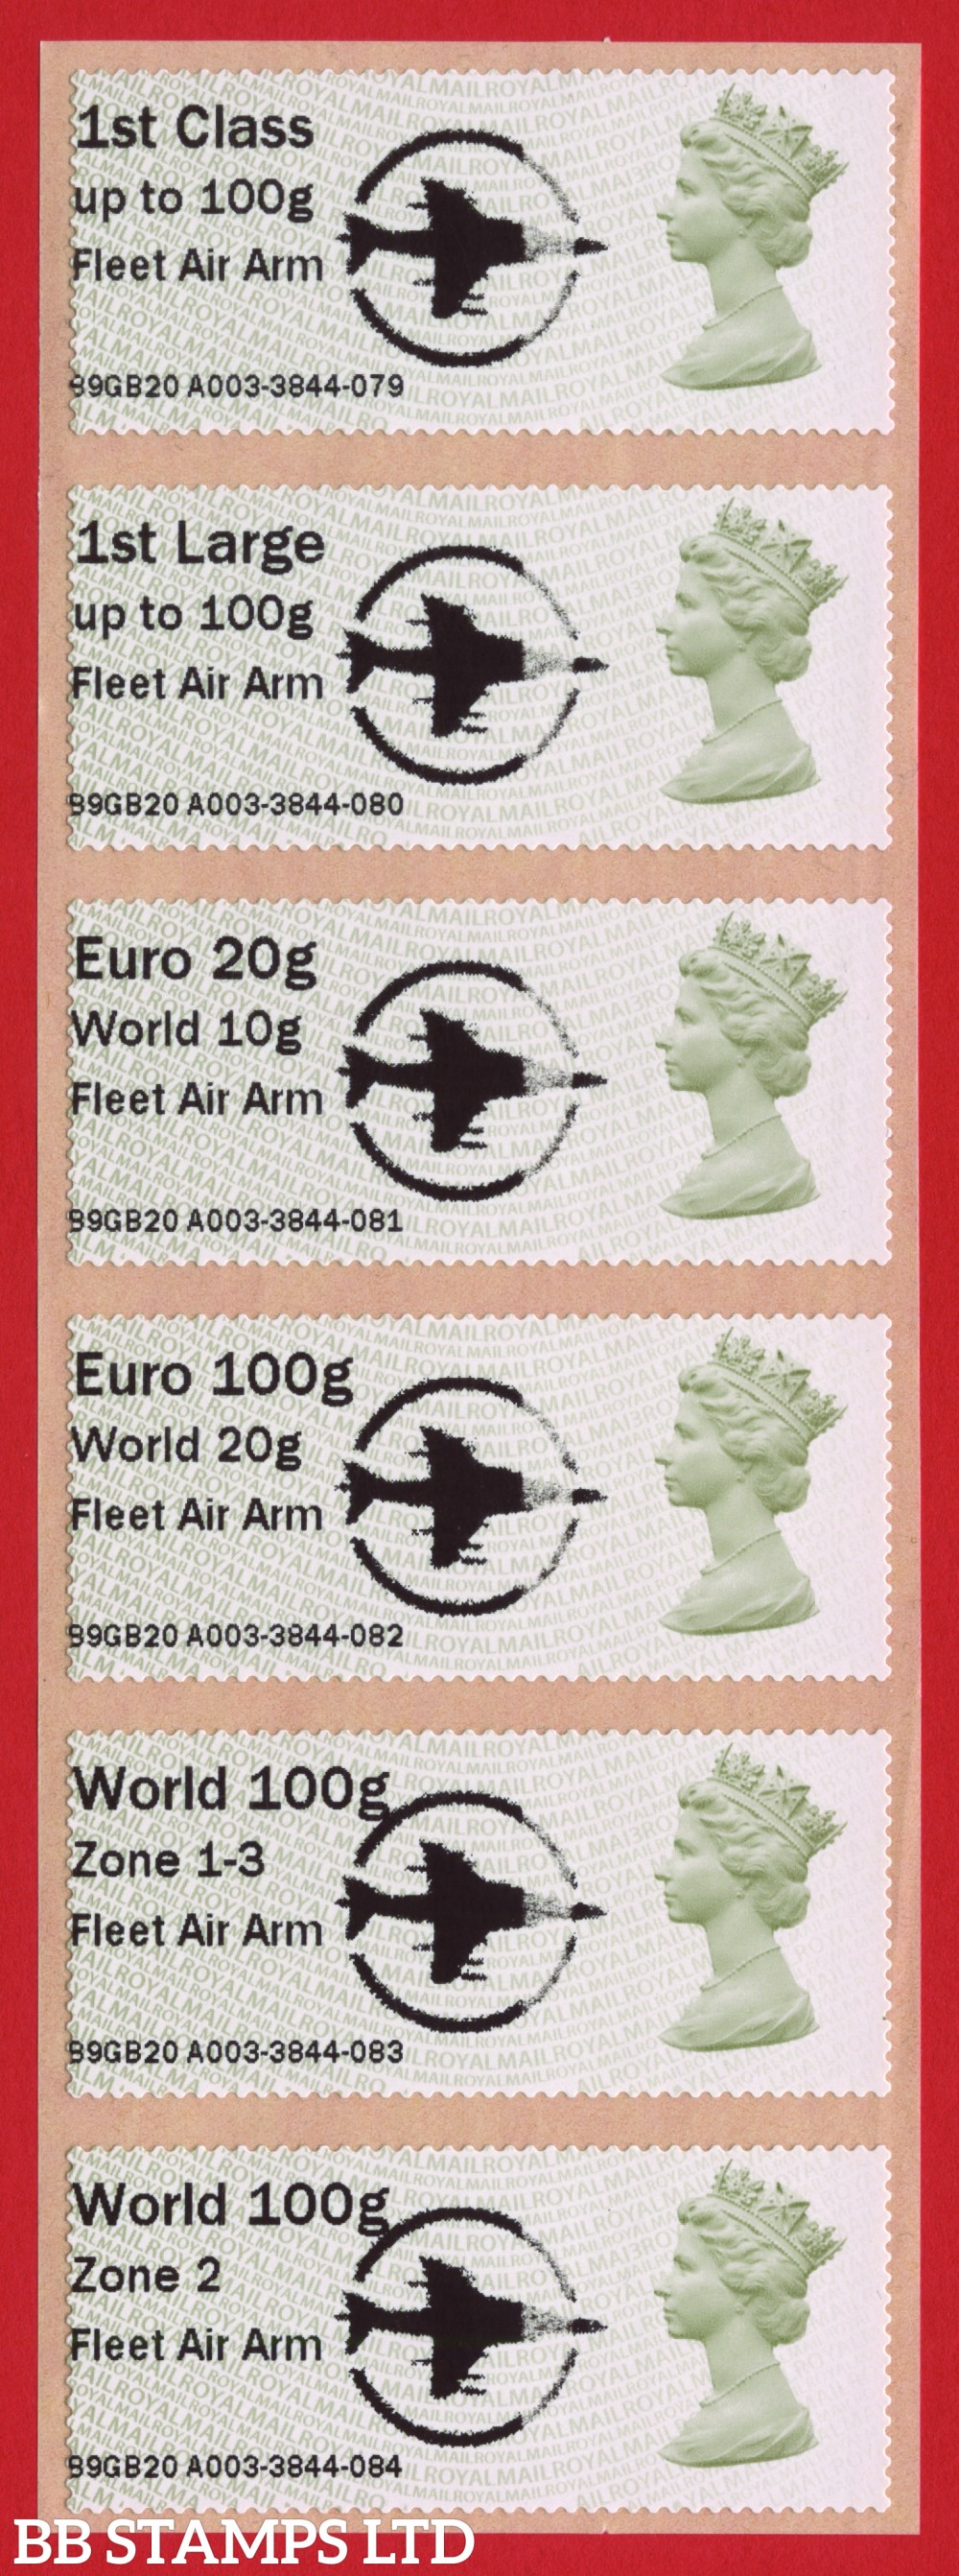 Machin Fleet Air Arm + large Circle Logo, with new overseas tariff stamps as issued on 01 September 2020. Set of 6, TIIIA: 1st, 1stL, Euro 20g World 10g – and new tariff Euro 100g World 20g/World 100g Zone 1-3/World Zone 2 stamps: MA13 (BK29 P20)